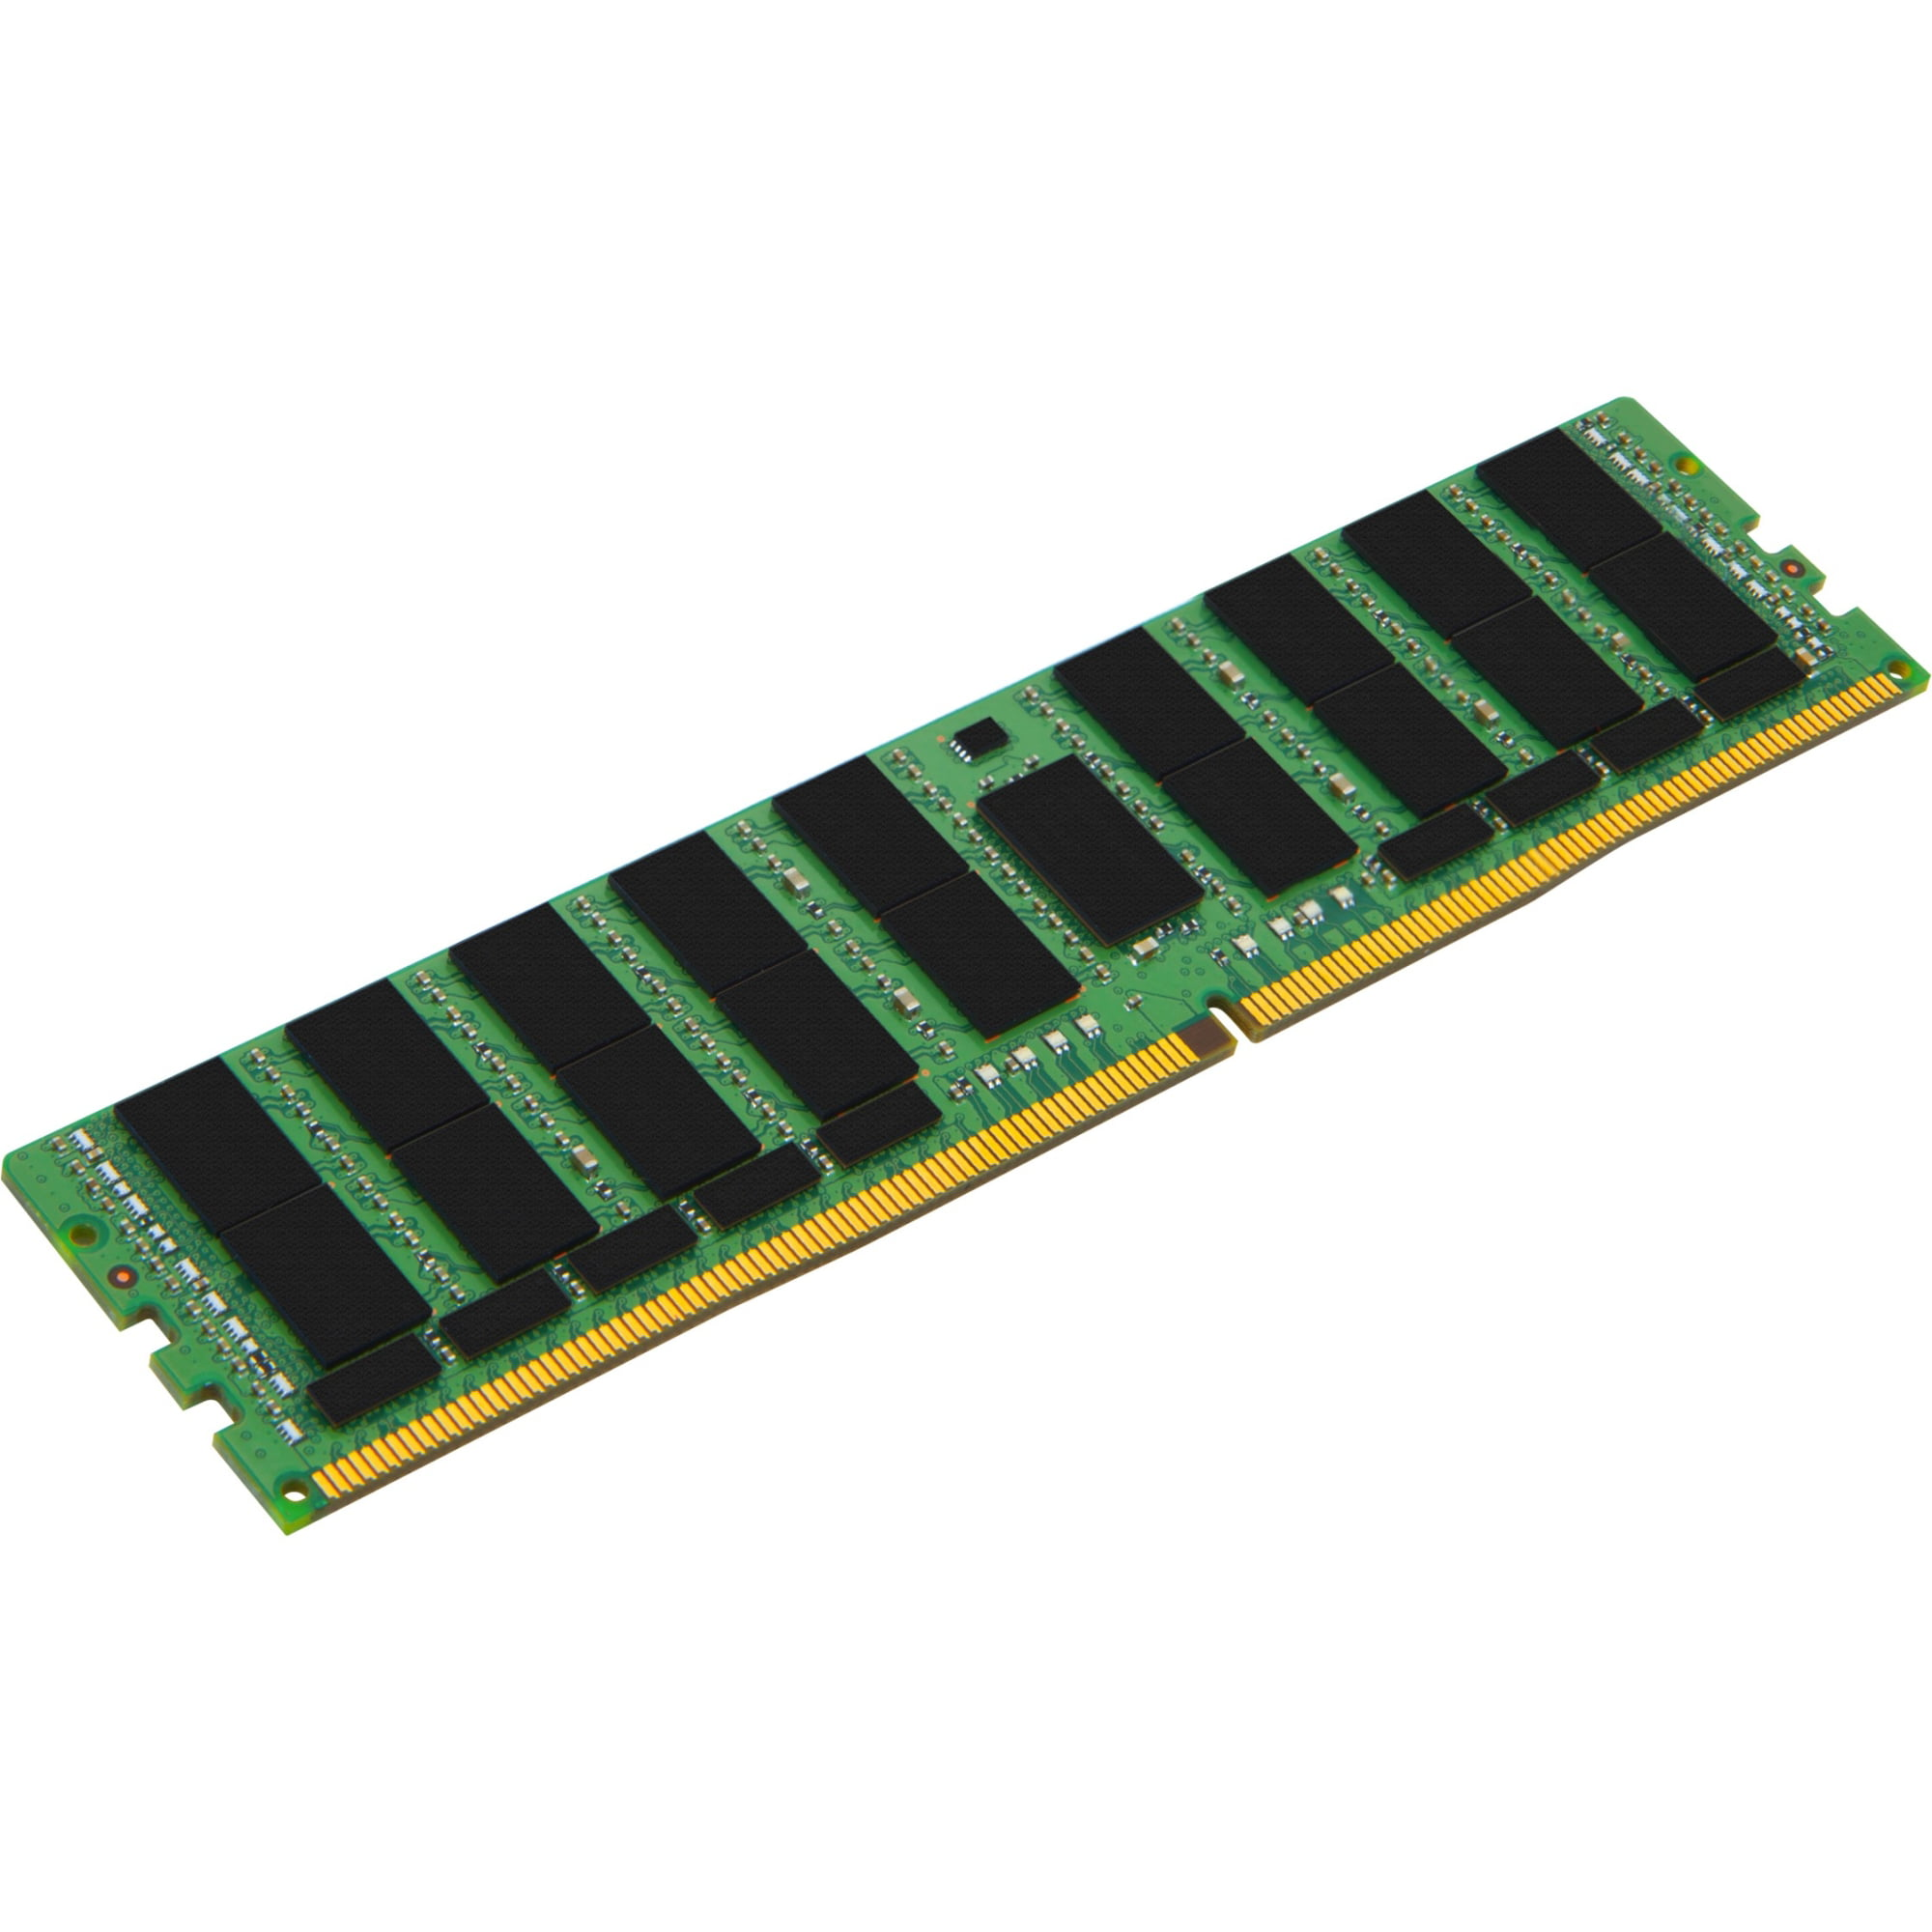 Kingston 32GB DDR4 2133 MHz 1.20 V ECC 288-pin LRDIMM Memory Module